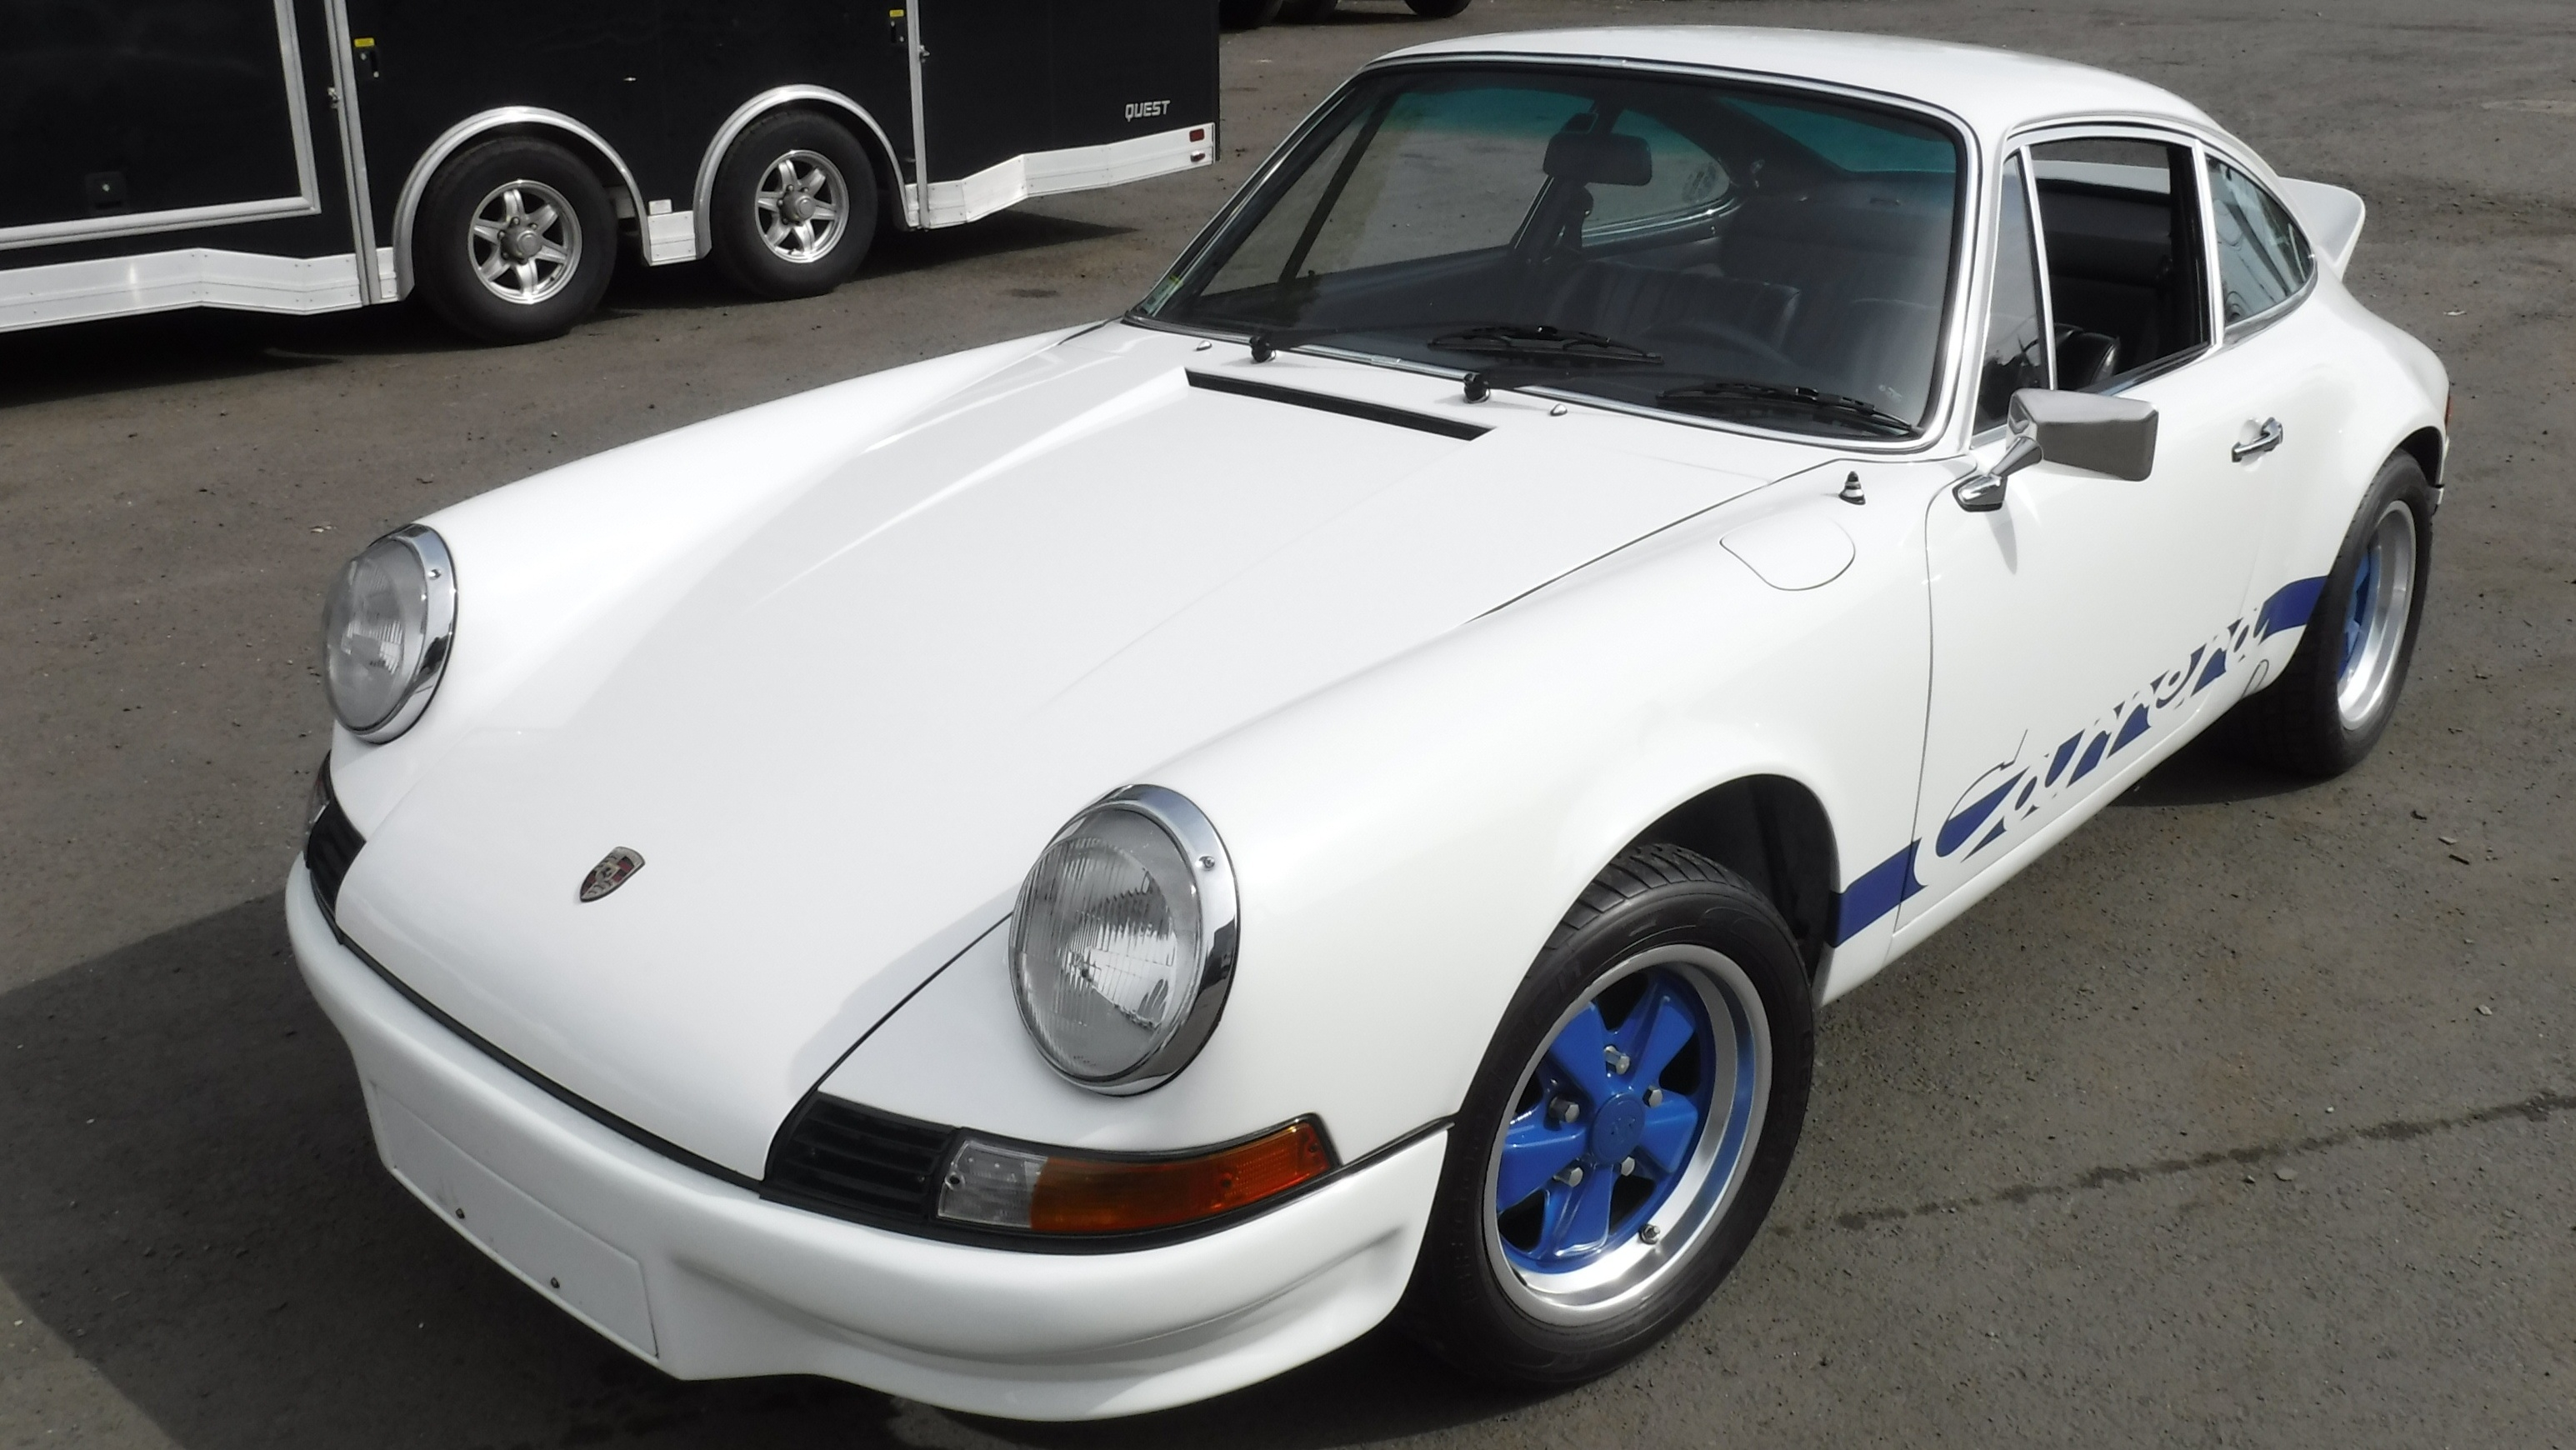 The 911 Carrera RS - an iconic German classic